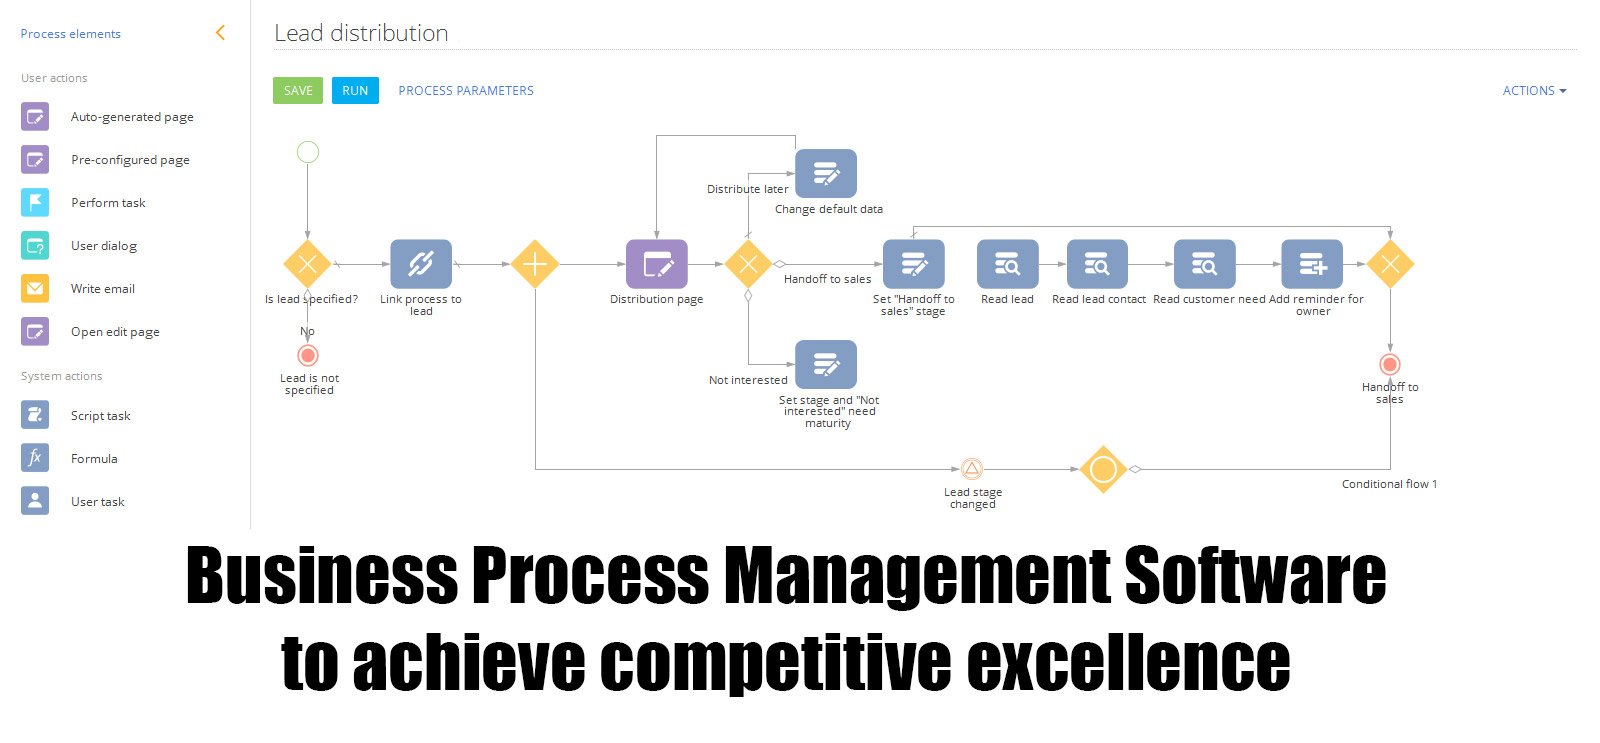 Business Process Management Software To Achieve Competitive Excellence